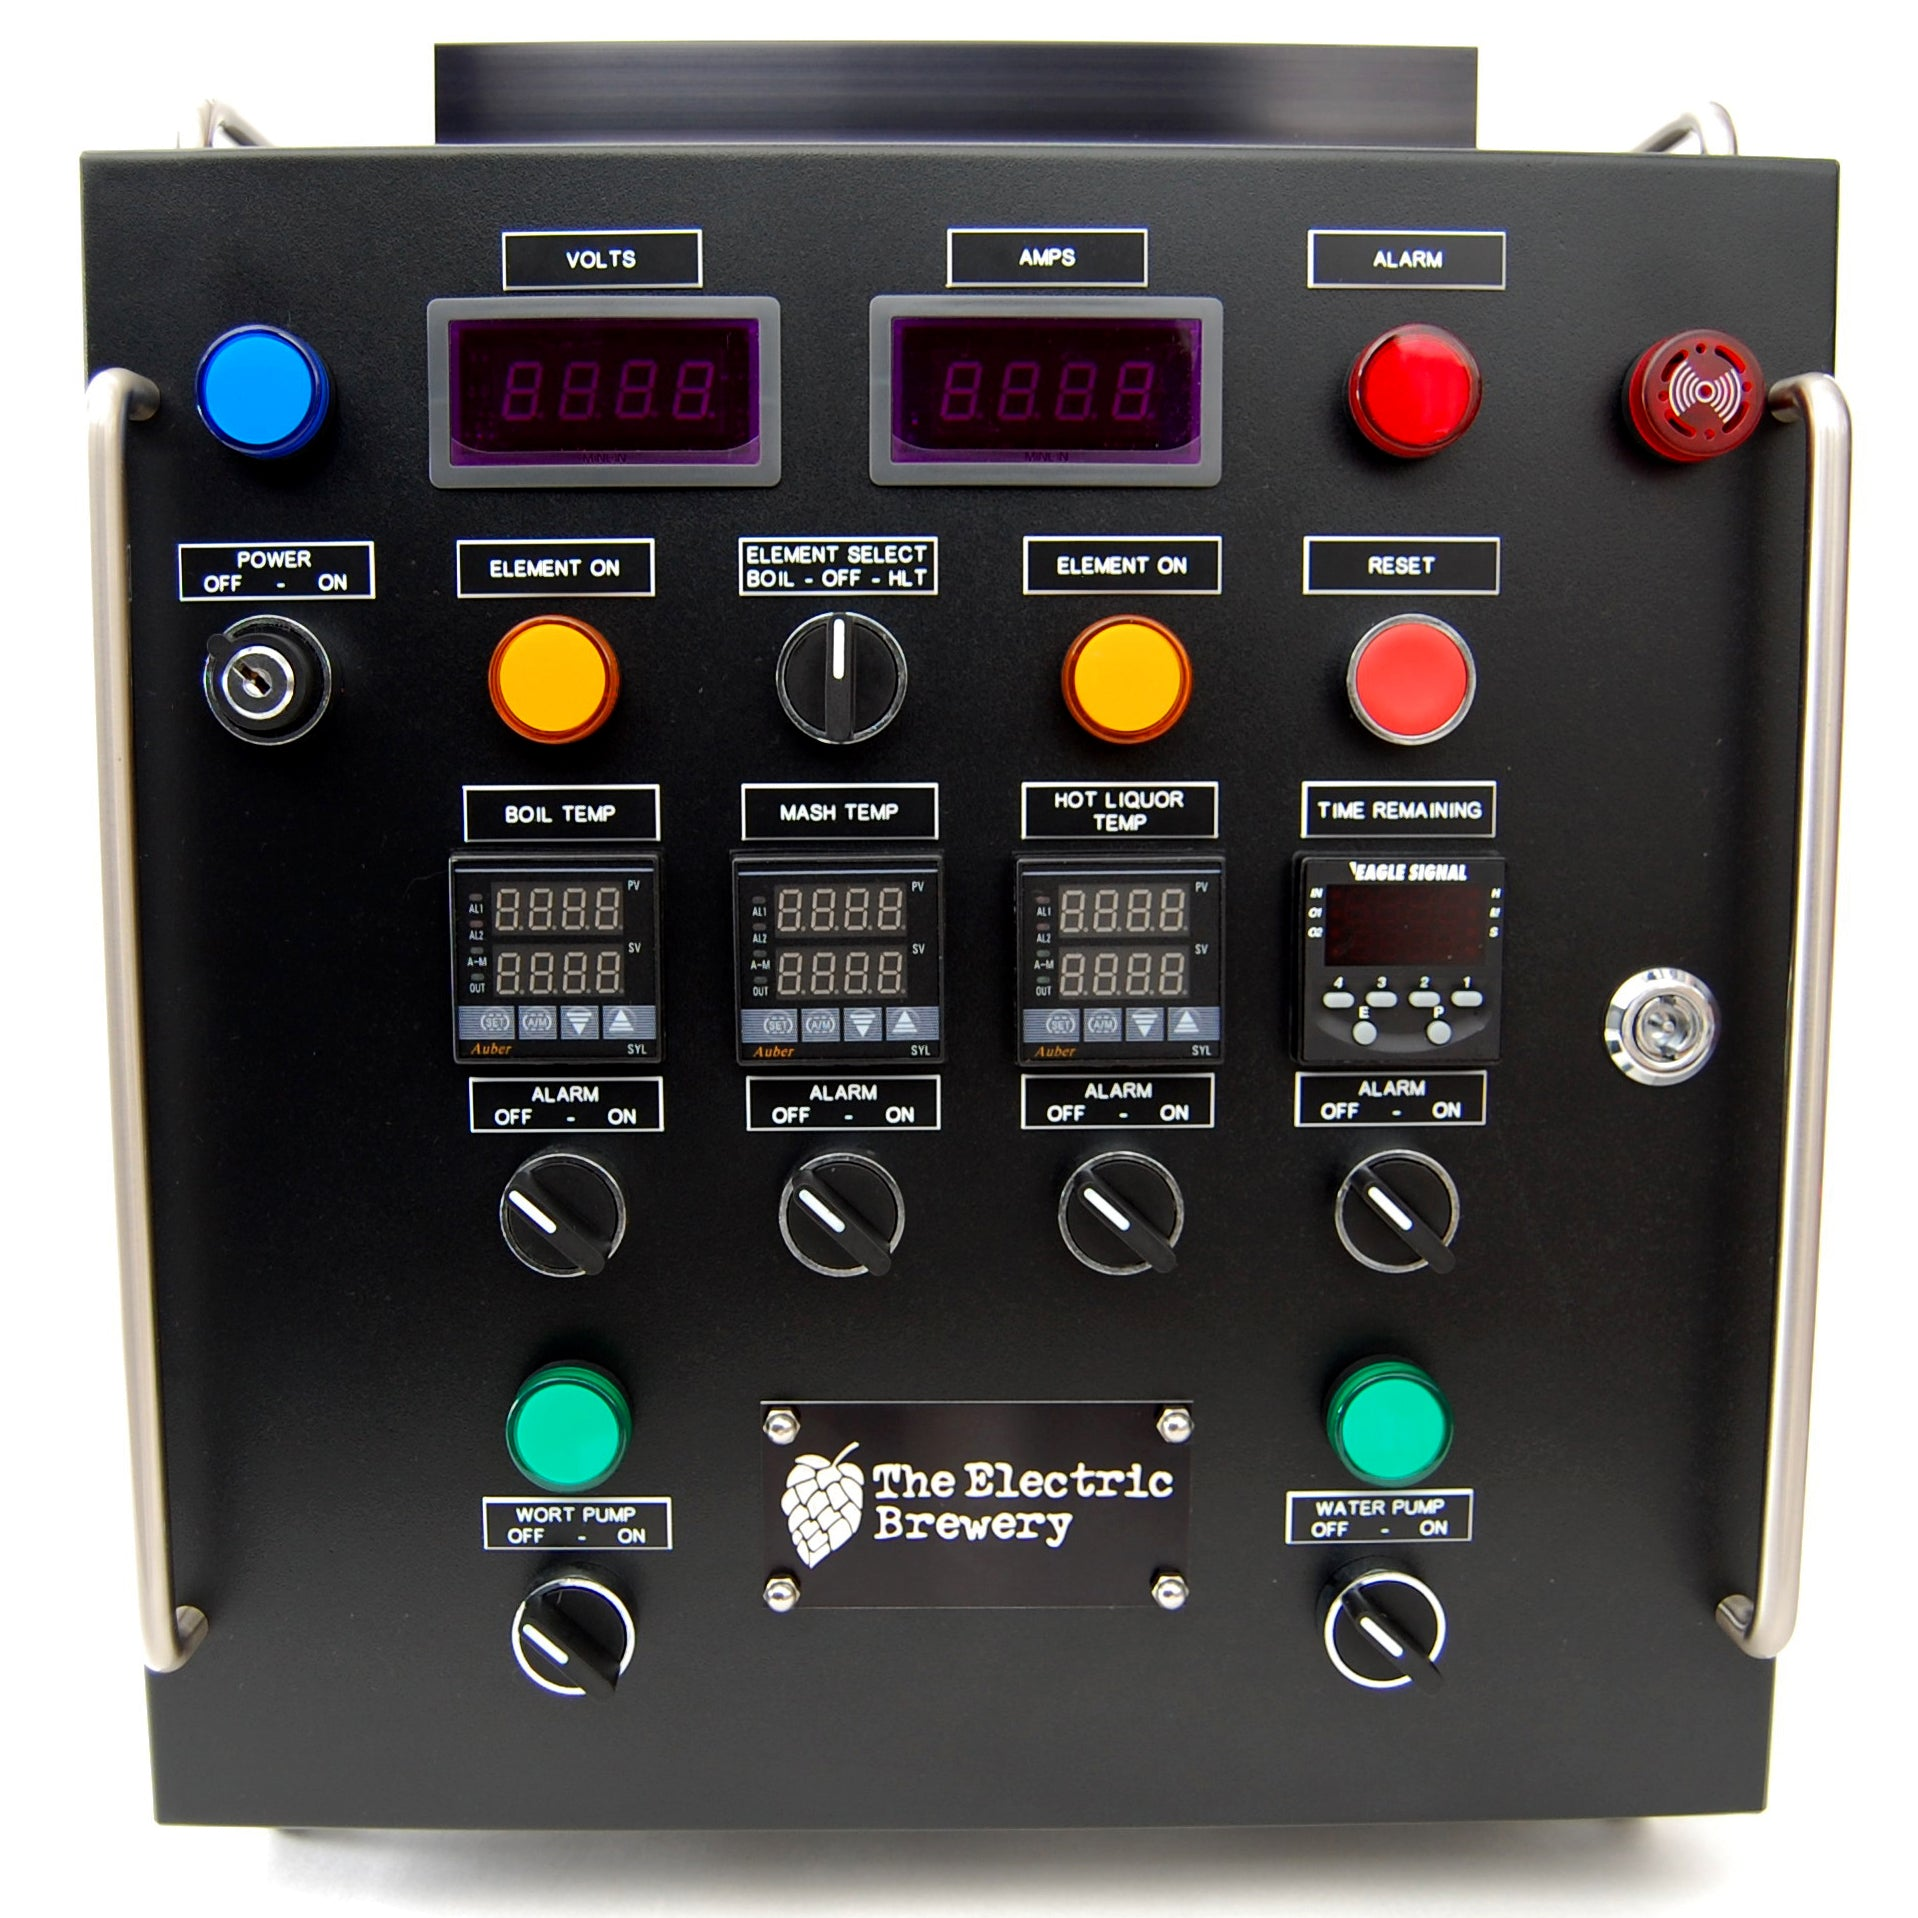 Standard 30A Electric Brewery Control Panel (DIY Kit) - The Electric ...